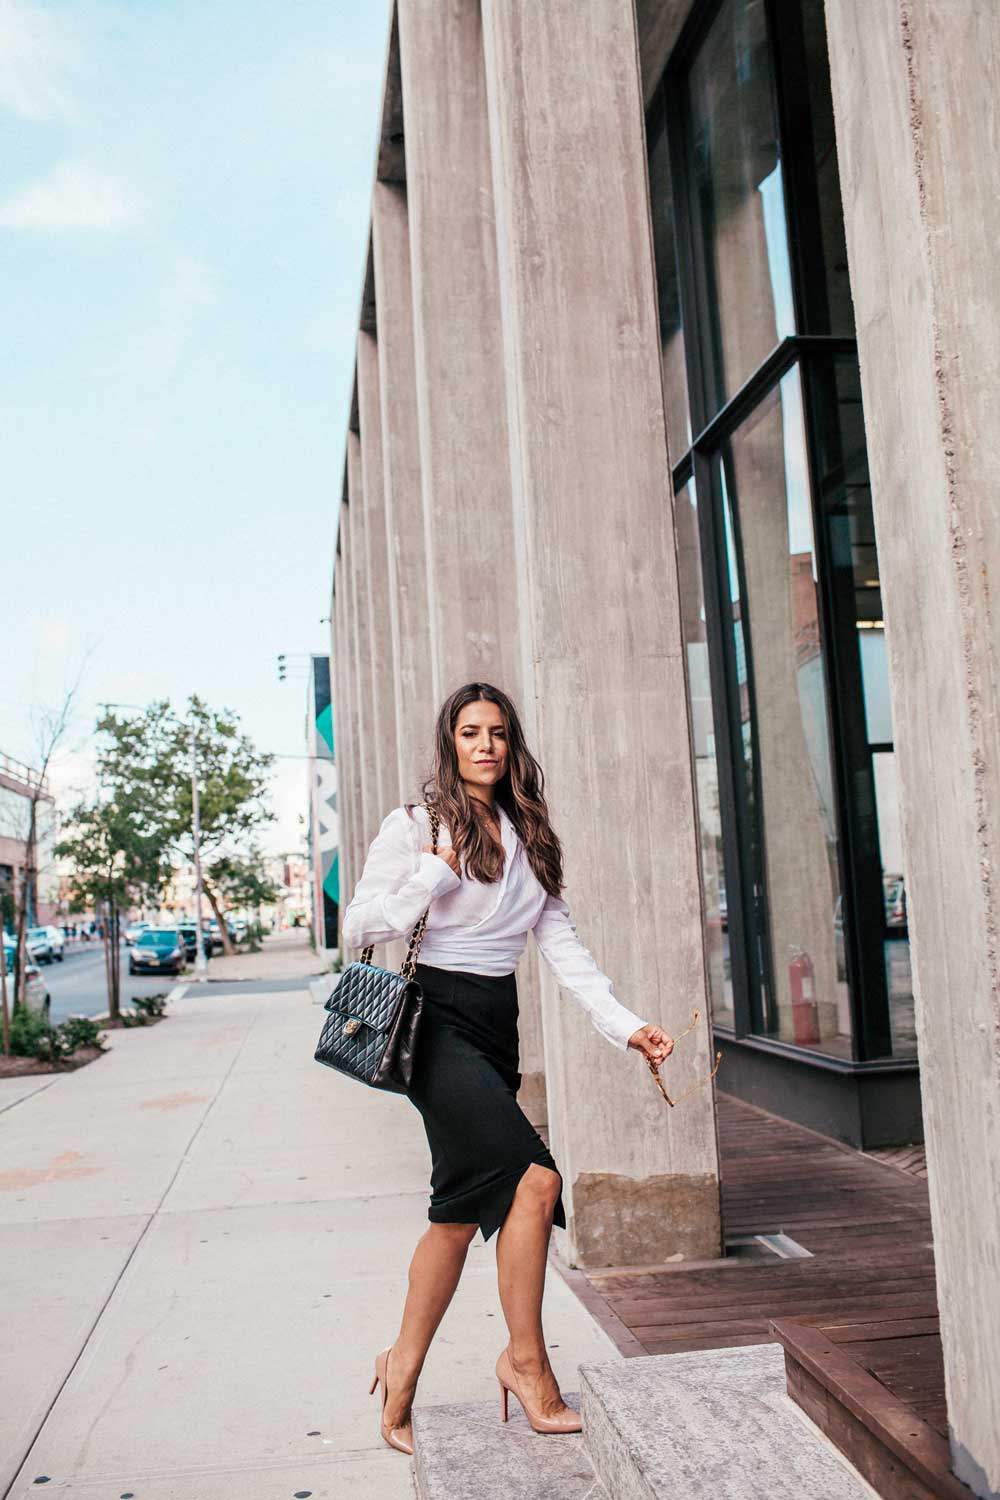 e6057fadcc7ed8 Corporate Catwalk Black Pencil Skirt White Shirt Nude Heels Brooklyn  Workwear Basics Everyday Fashion Office 11